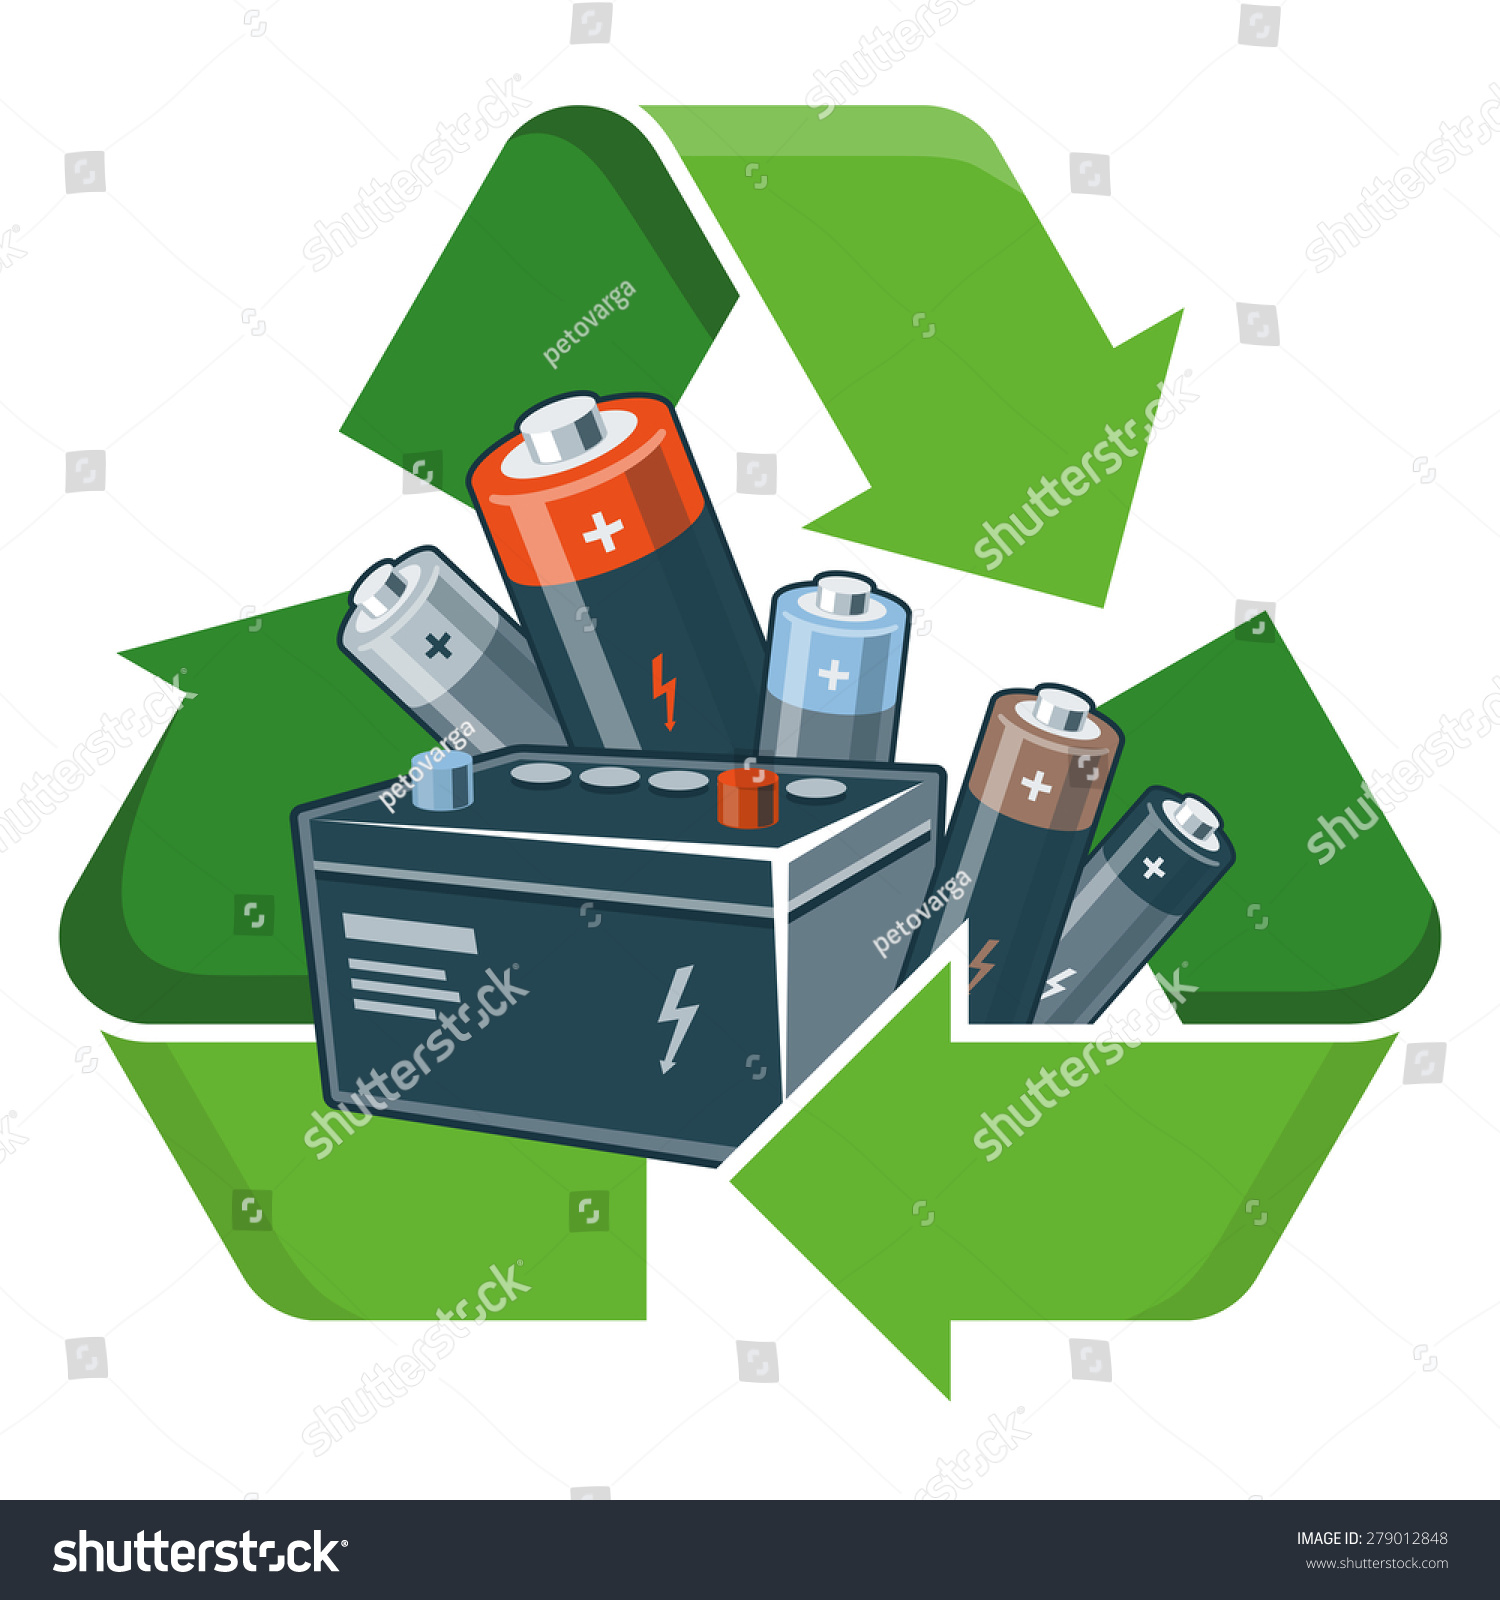 E waste background images - Used Batteries With Green Recycling Symbol In Cartoon Style Isolated Vector Illustration On White Background